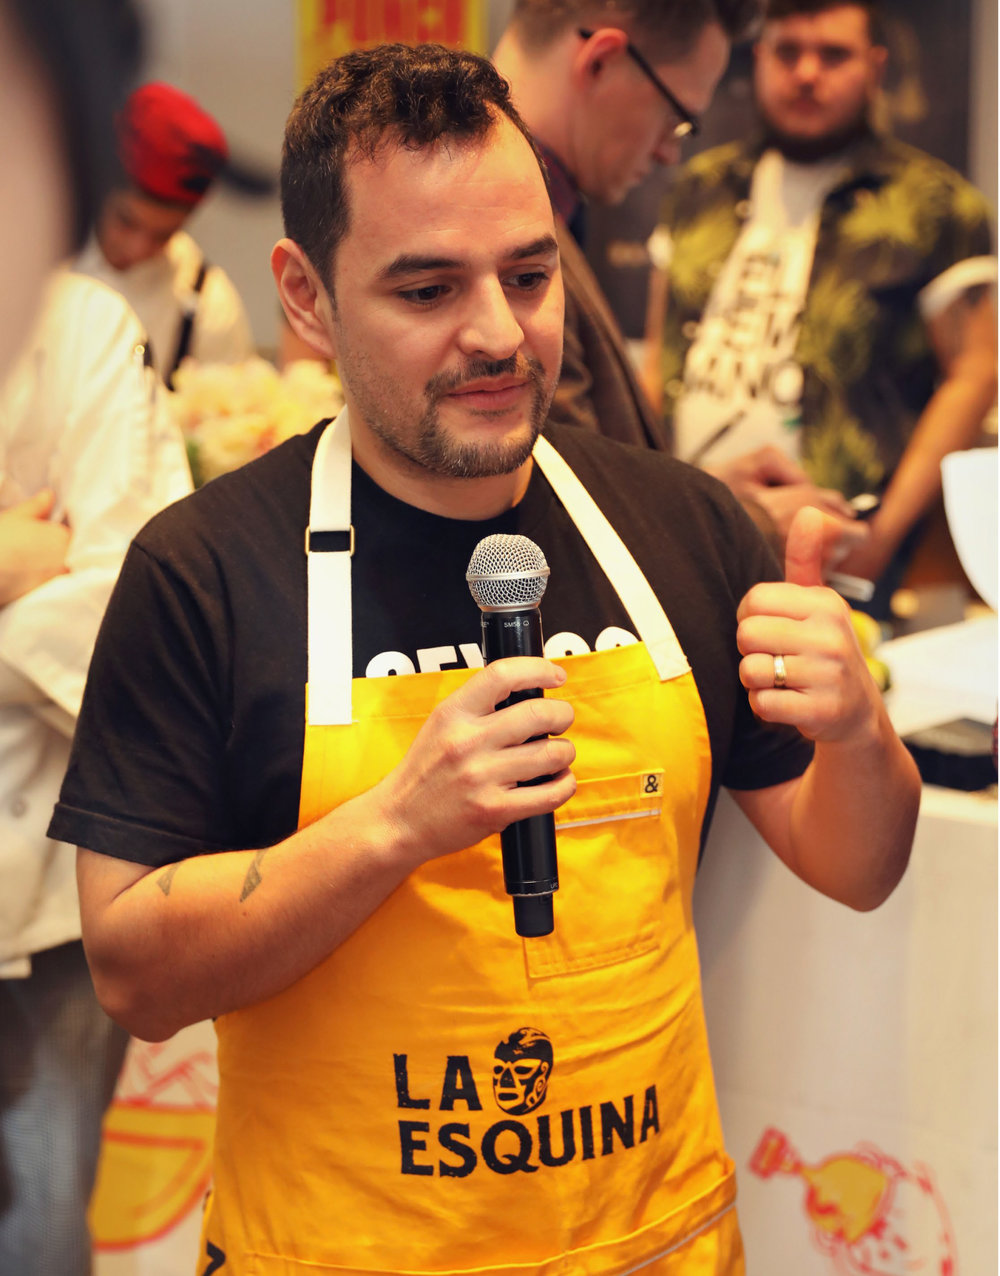 Chef Fabian Gallardo